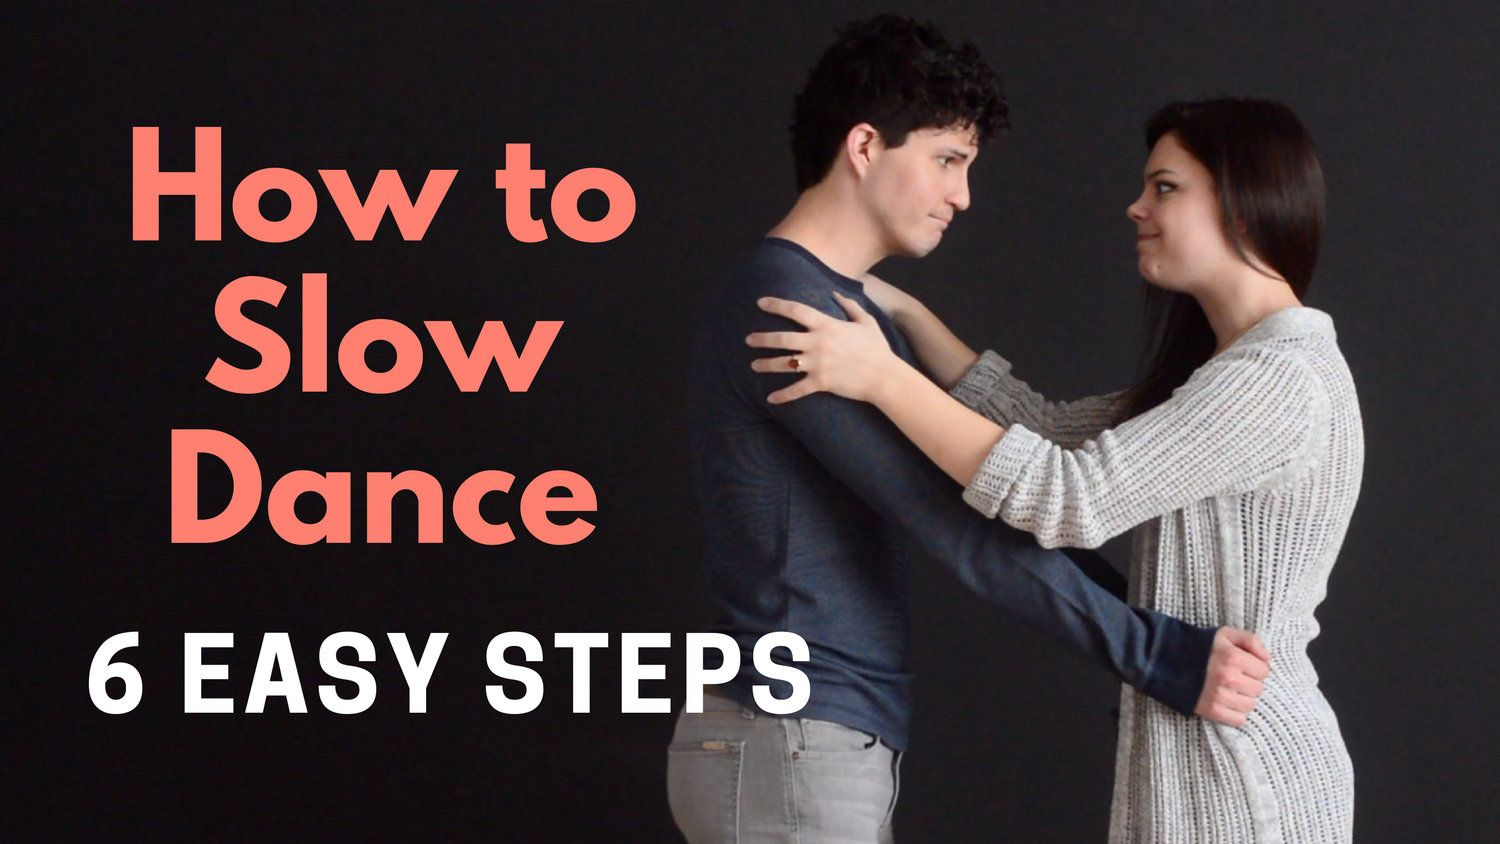 How To Slow Dance At Wedding Or Prom 6 Easy Steps With Video Instruction Duet Dance Studio Chicago Ballroom Dance In Chicago Slow Dance Slow Dance Songs Dance Steps